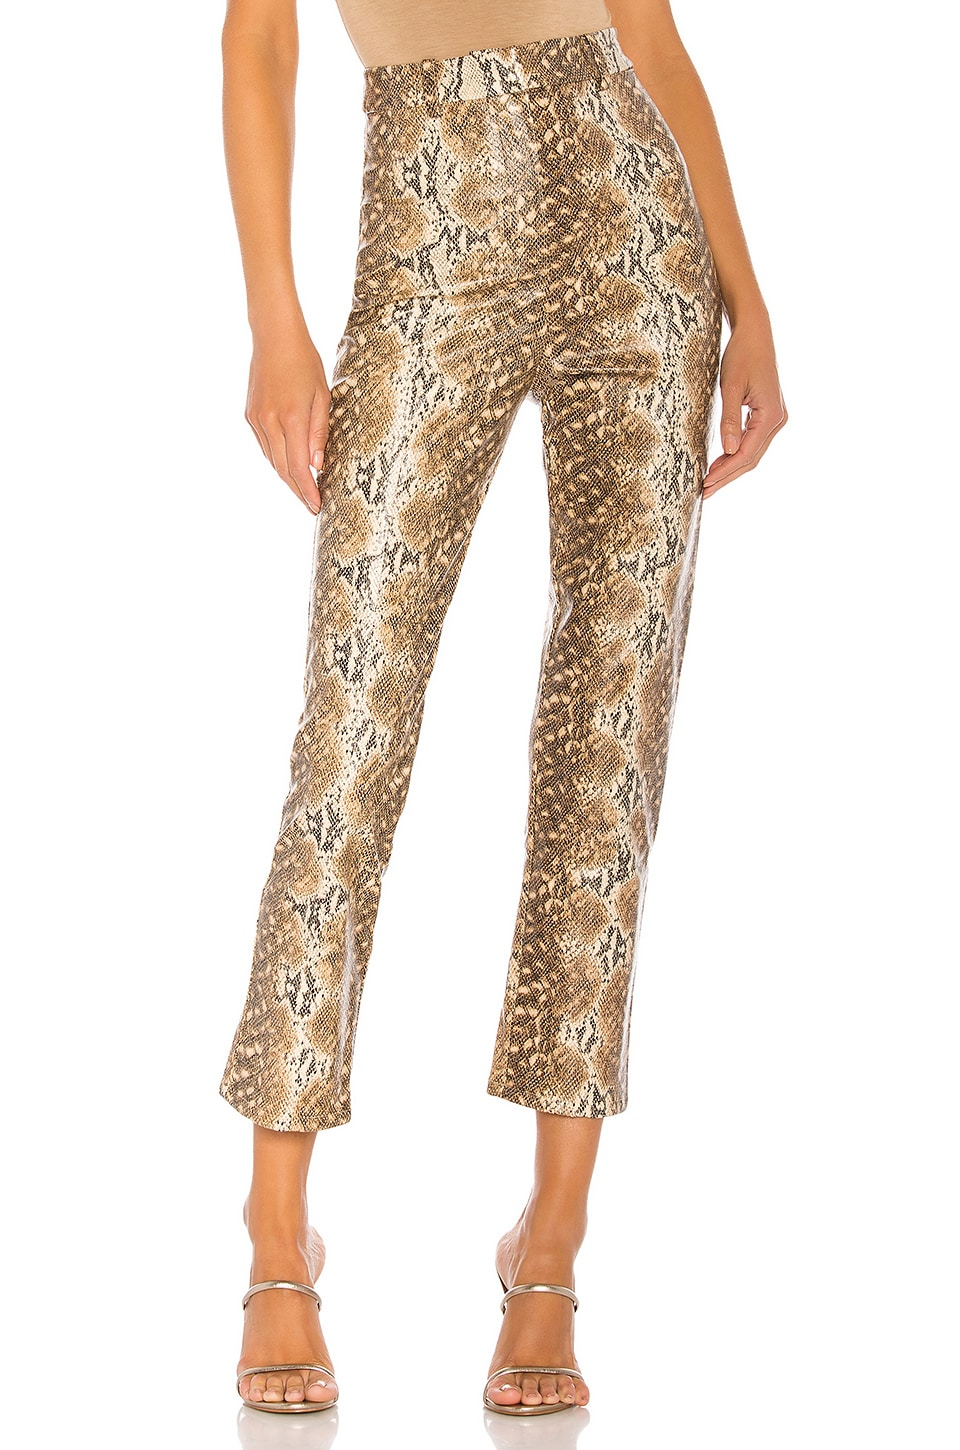 Lovers + Friends Indra Pant in Snake Skin